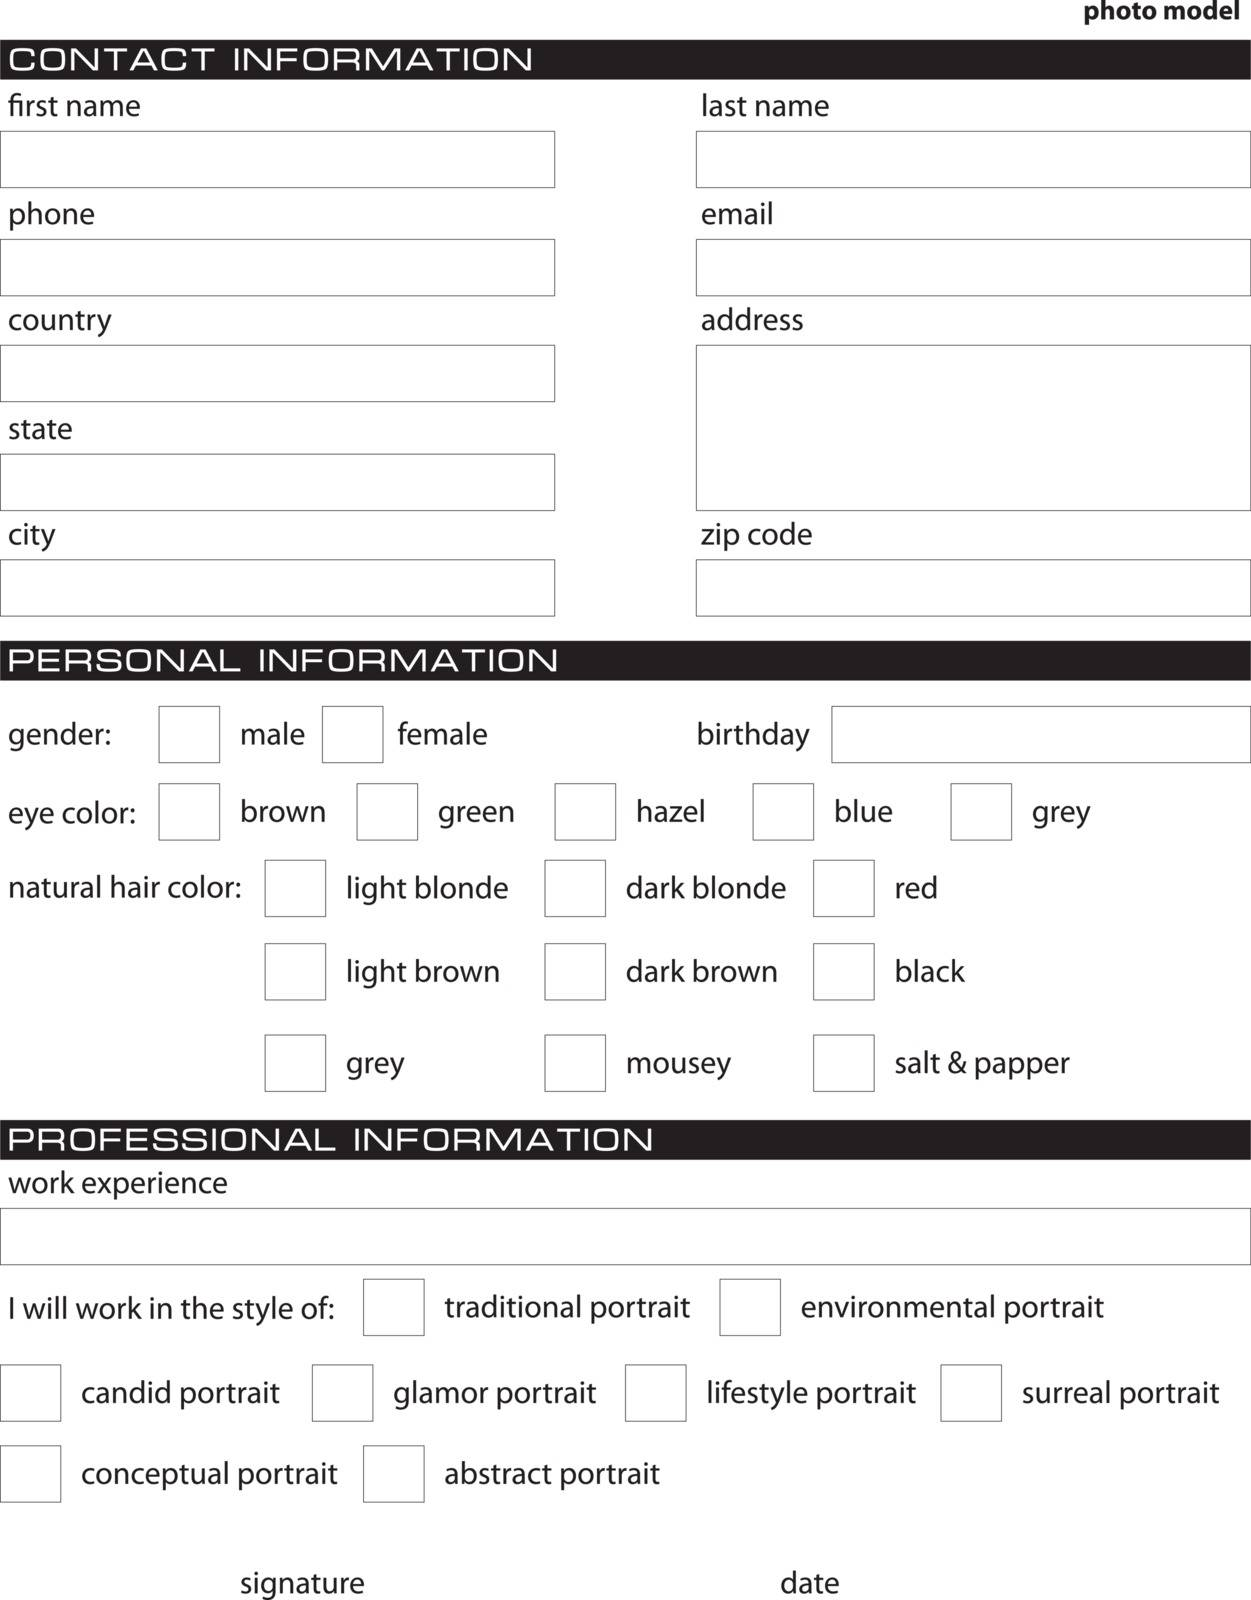 Application for employment work a photo model.